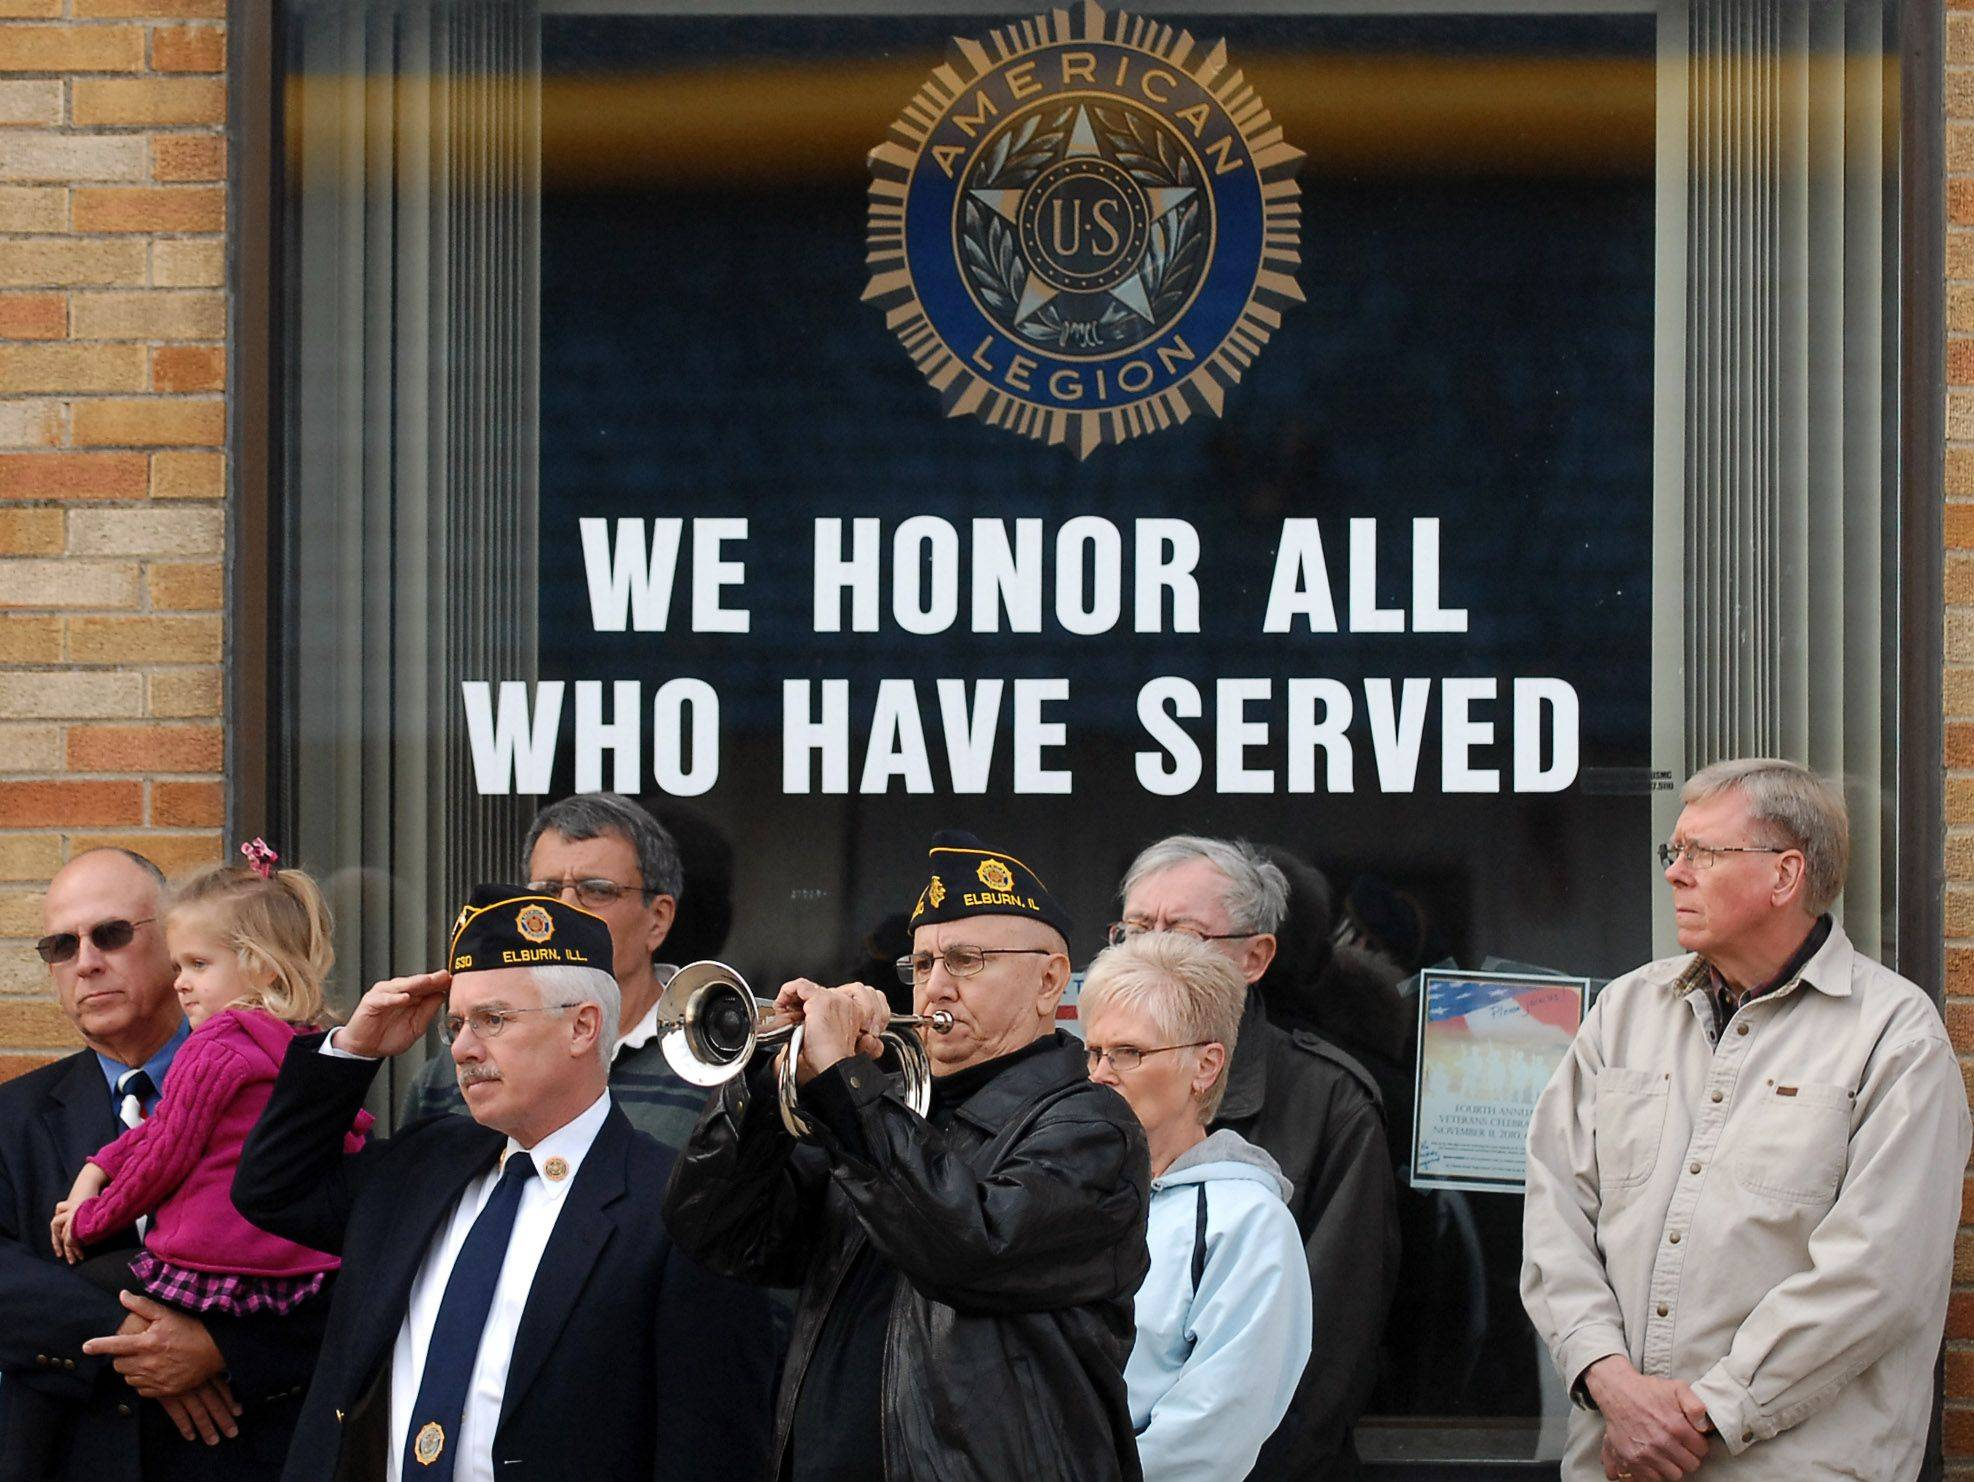 Veterans honored by their communities